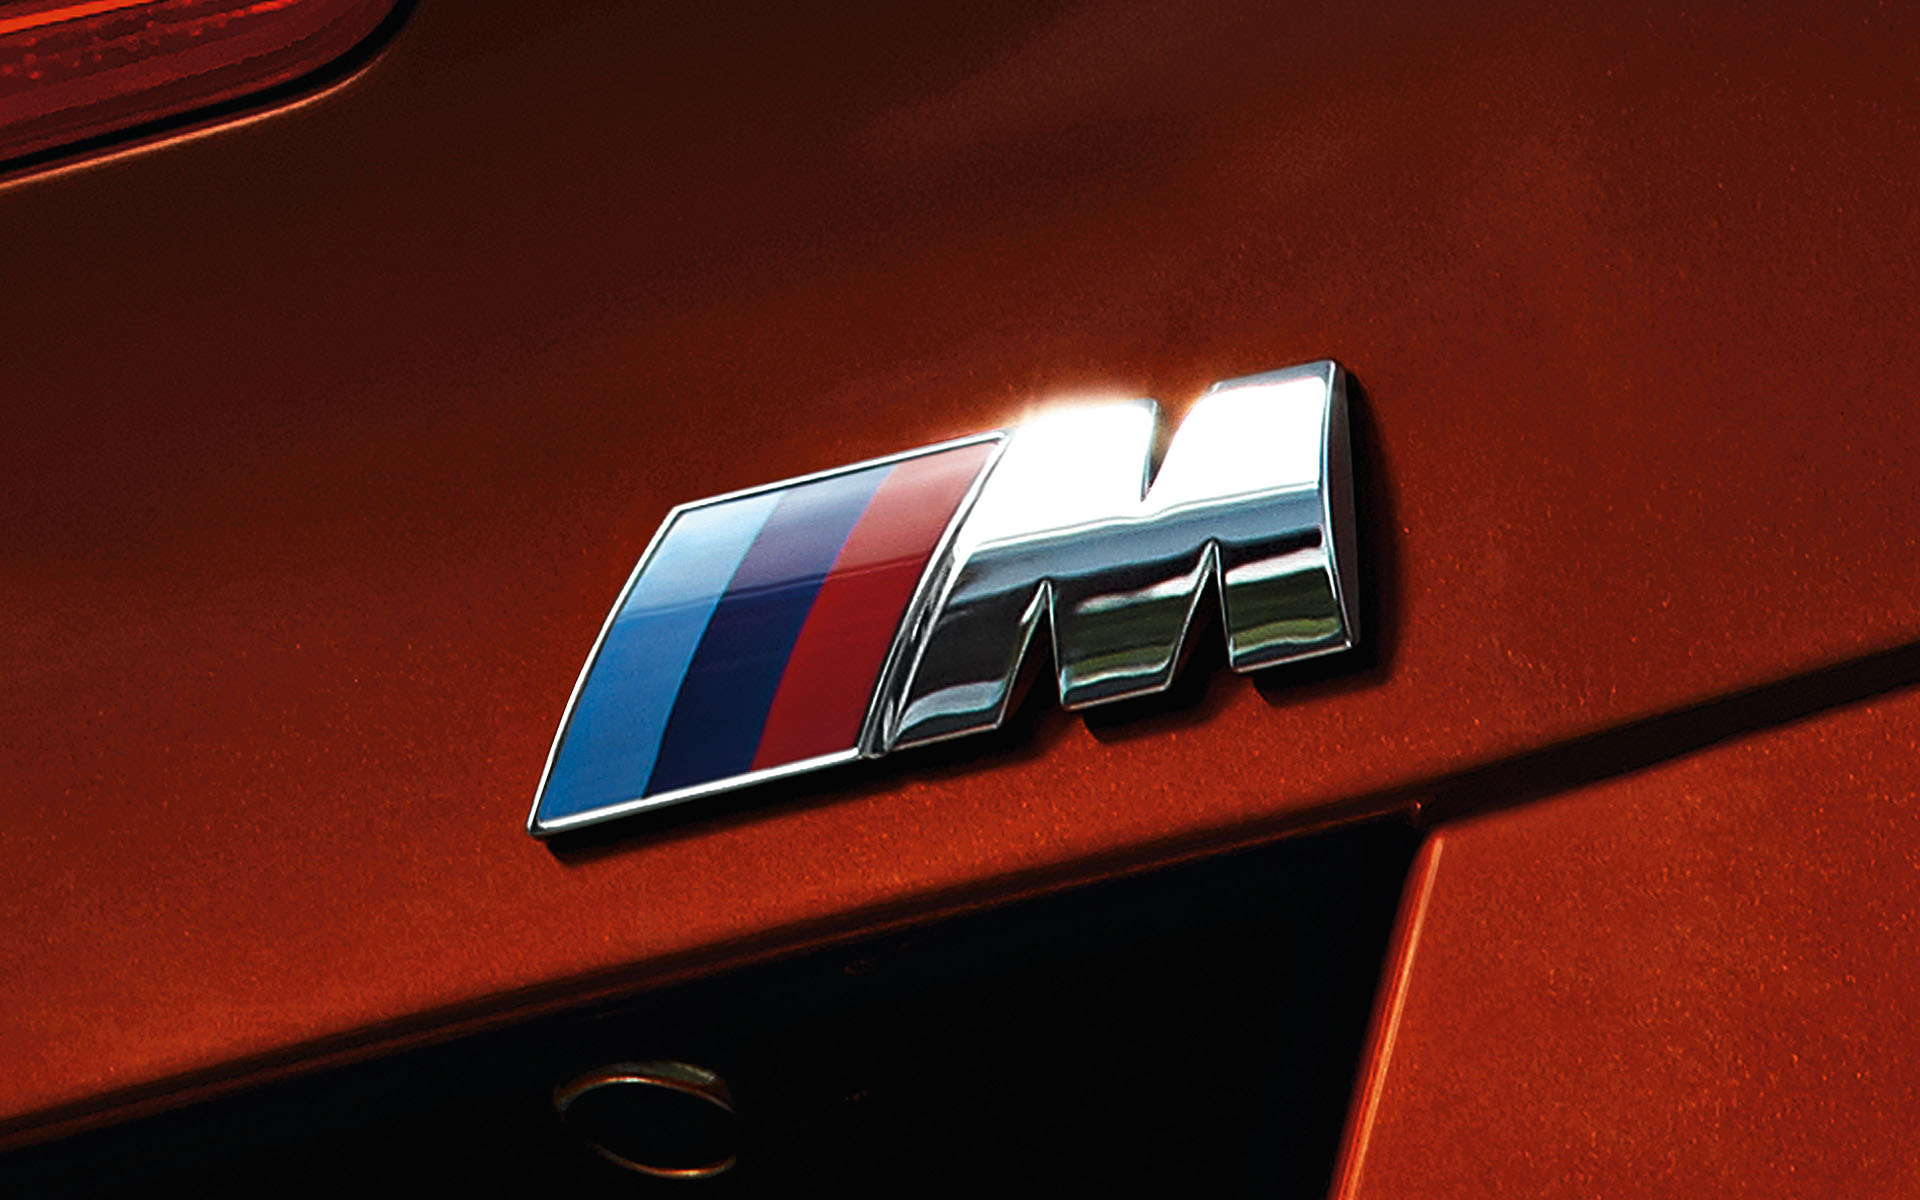 Bmw M Power Logo Wallpaper Hd driveeapusedmotorhomefo